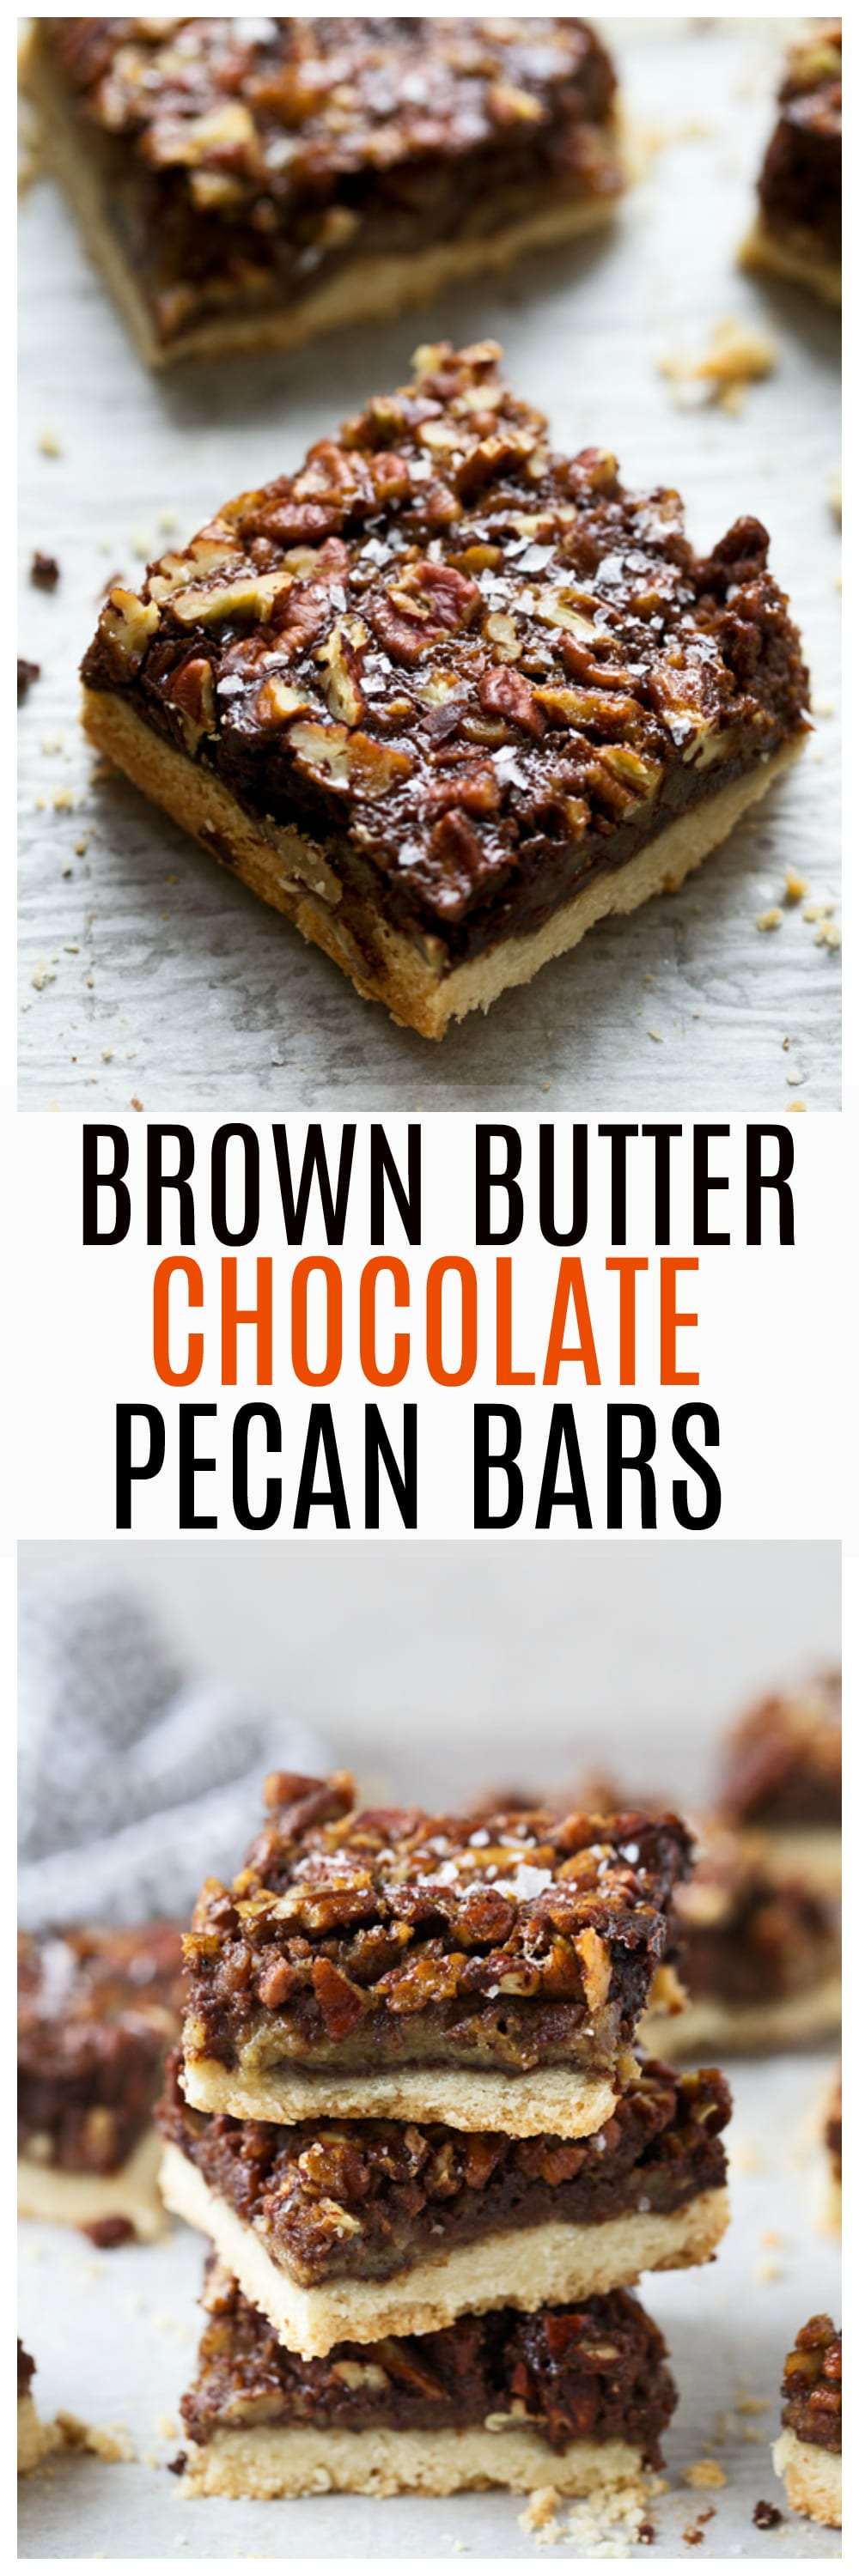 Brown Butter Chocolate Pecan Bars - Layers of salted shortbread, rich chocolate ganache and bourbon brown butter pecan filling.